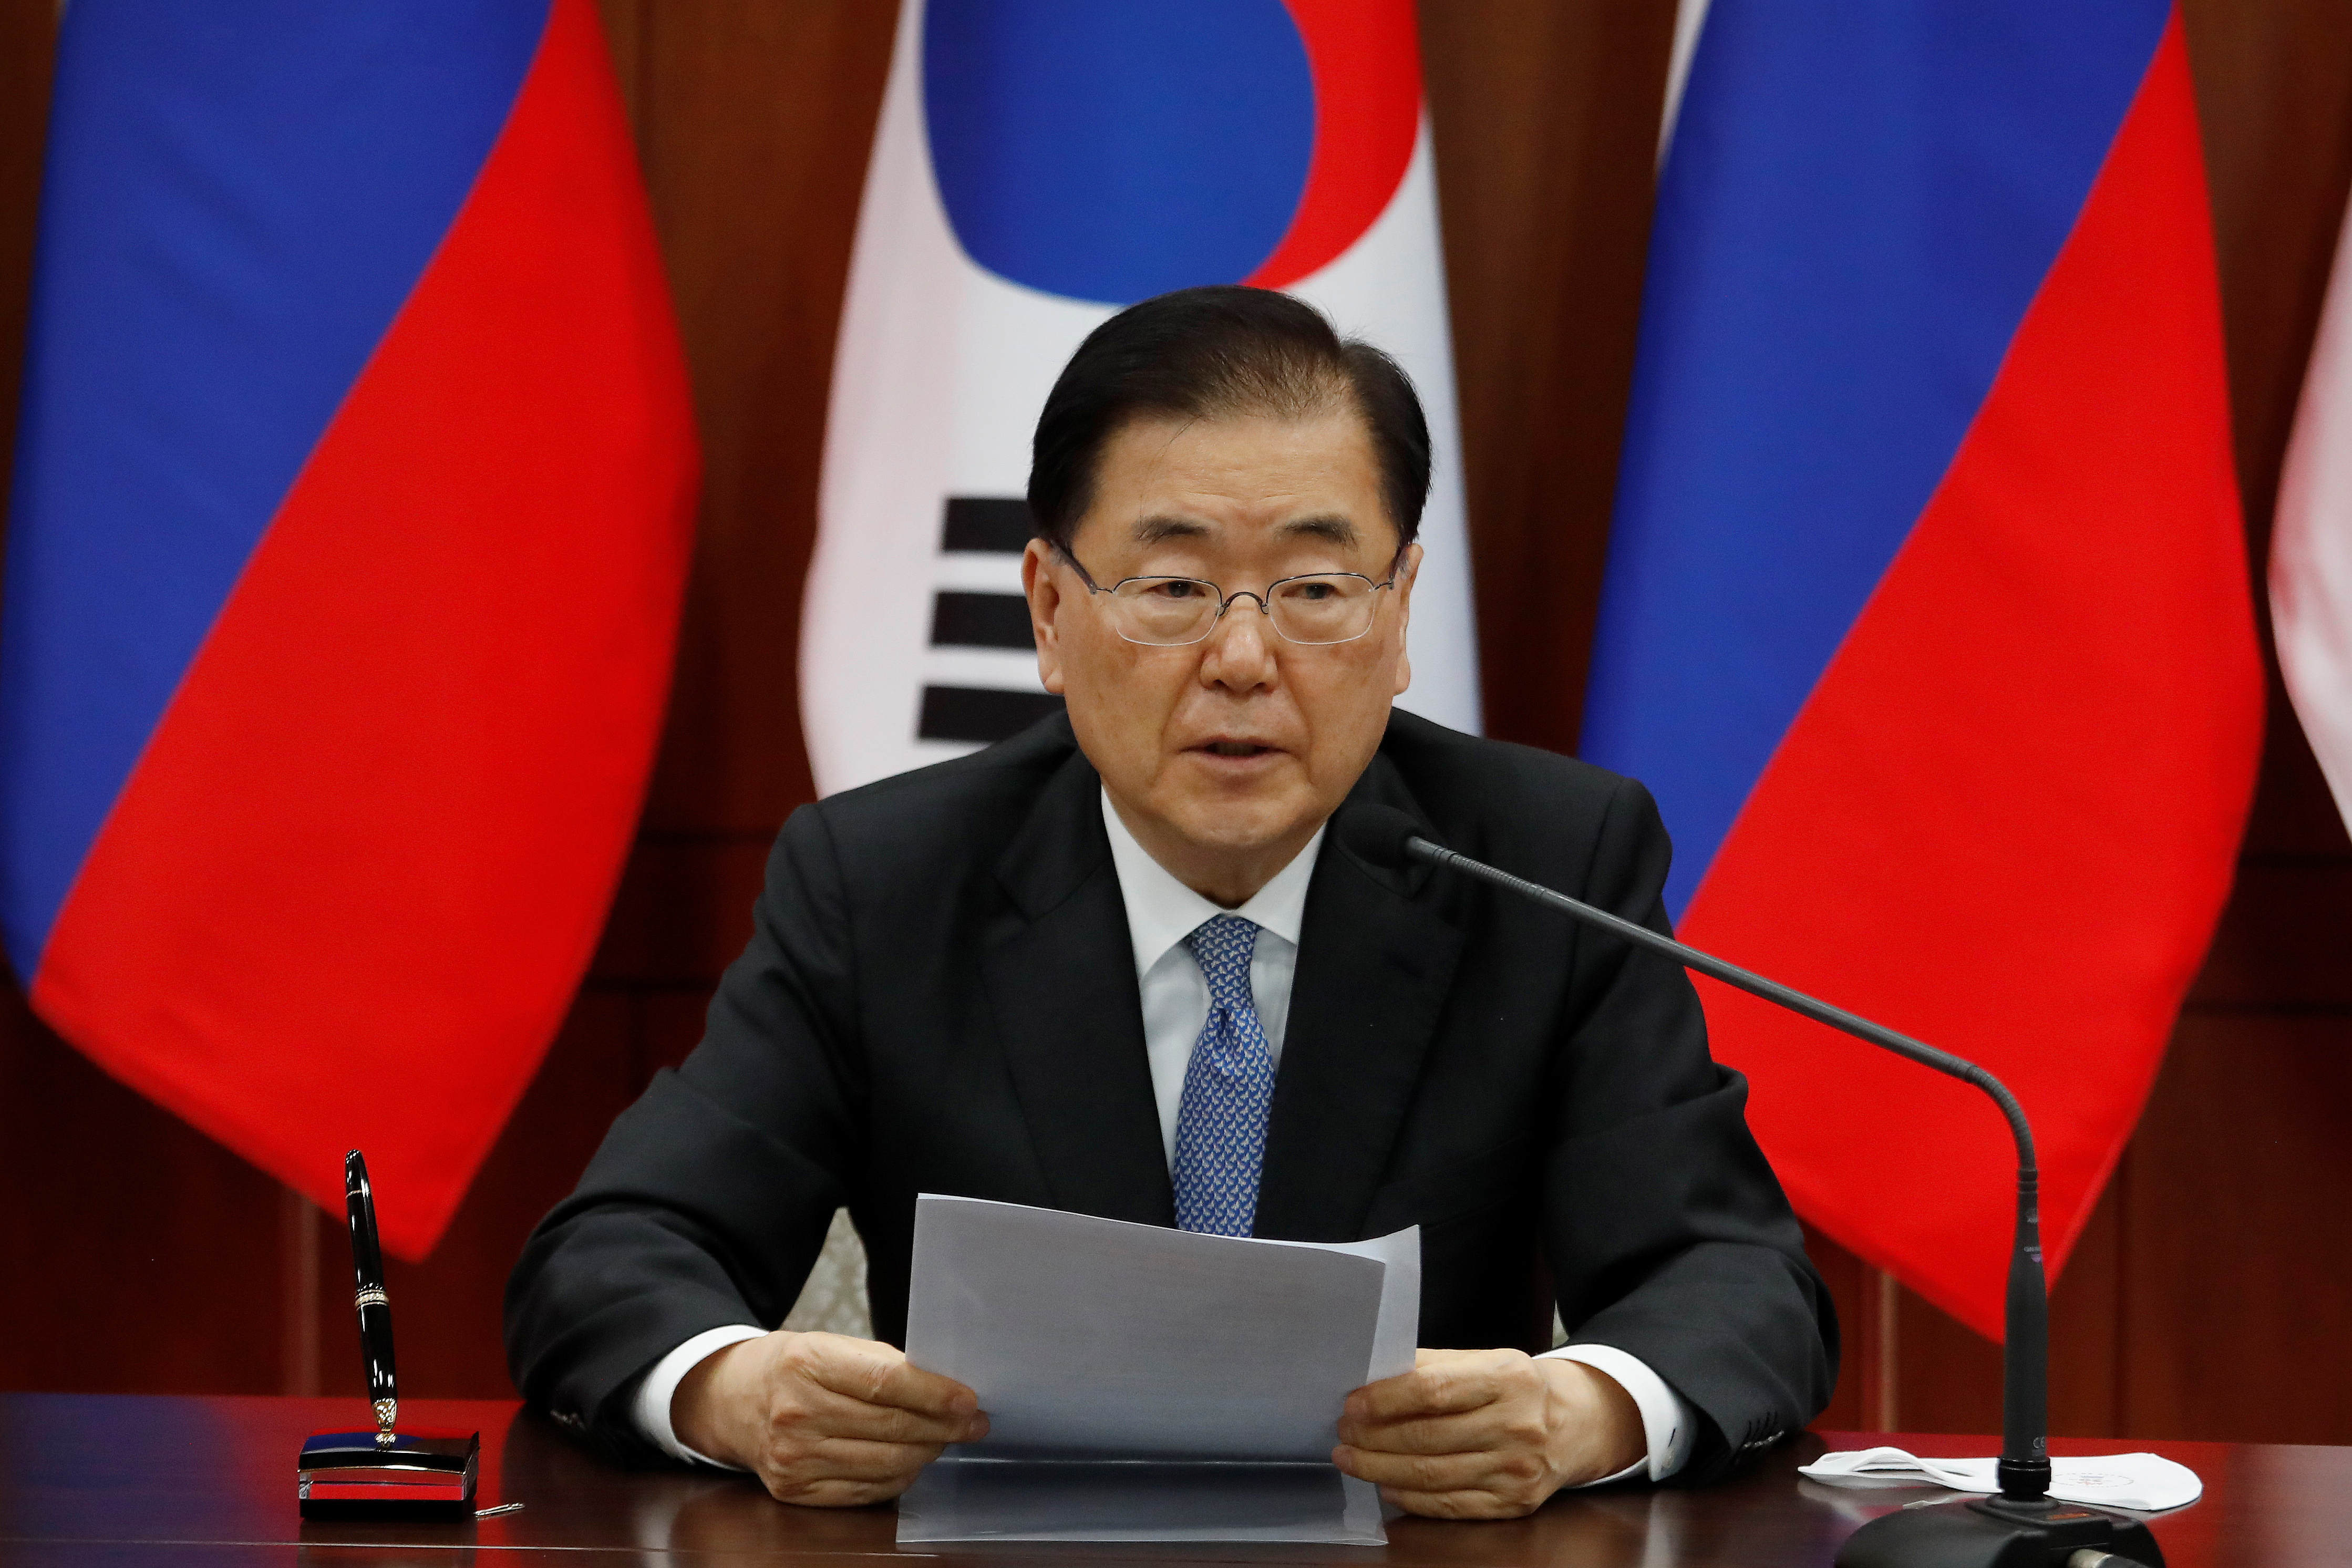 South Korean Foreign Minister Chung Eui-yong speaks during a joint announcement with Russian Foreign Minister Sergei Lavrov at the Foreign Ministry in Seoul, South Korea, March 25, 2021. Ahn Young-joon/Pool via REUTERS